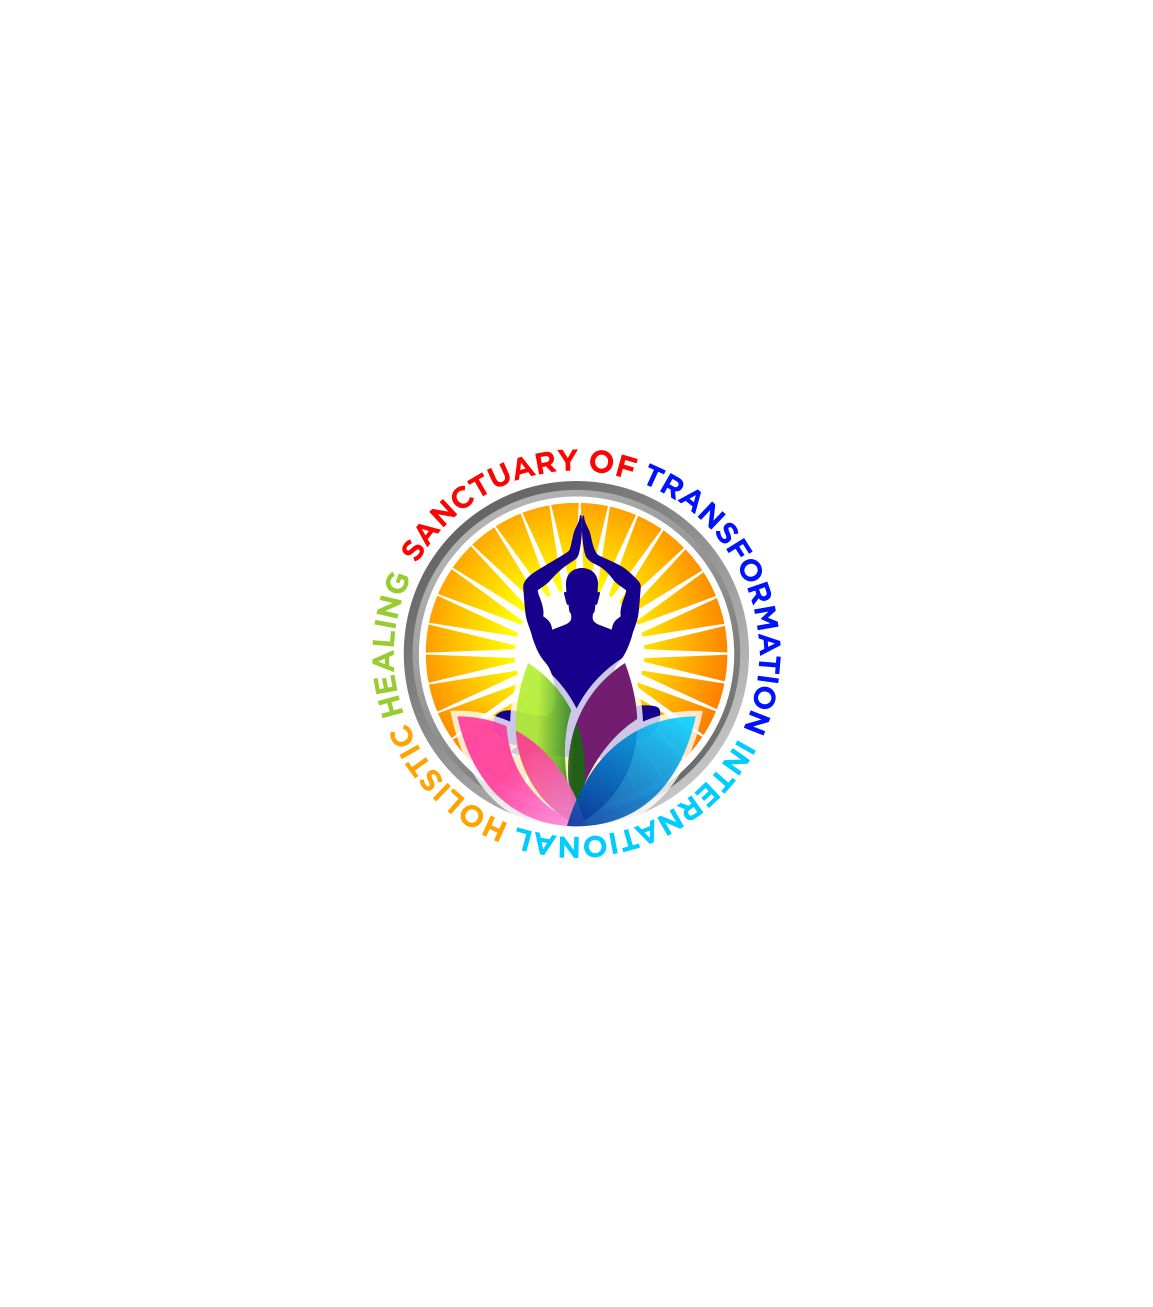 Logo Design by Raymond Garcia - Entry No. 44 in the Logo Design Contest Fun Logo Design for Sanctuary of Transformation.